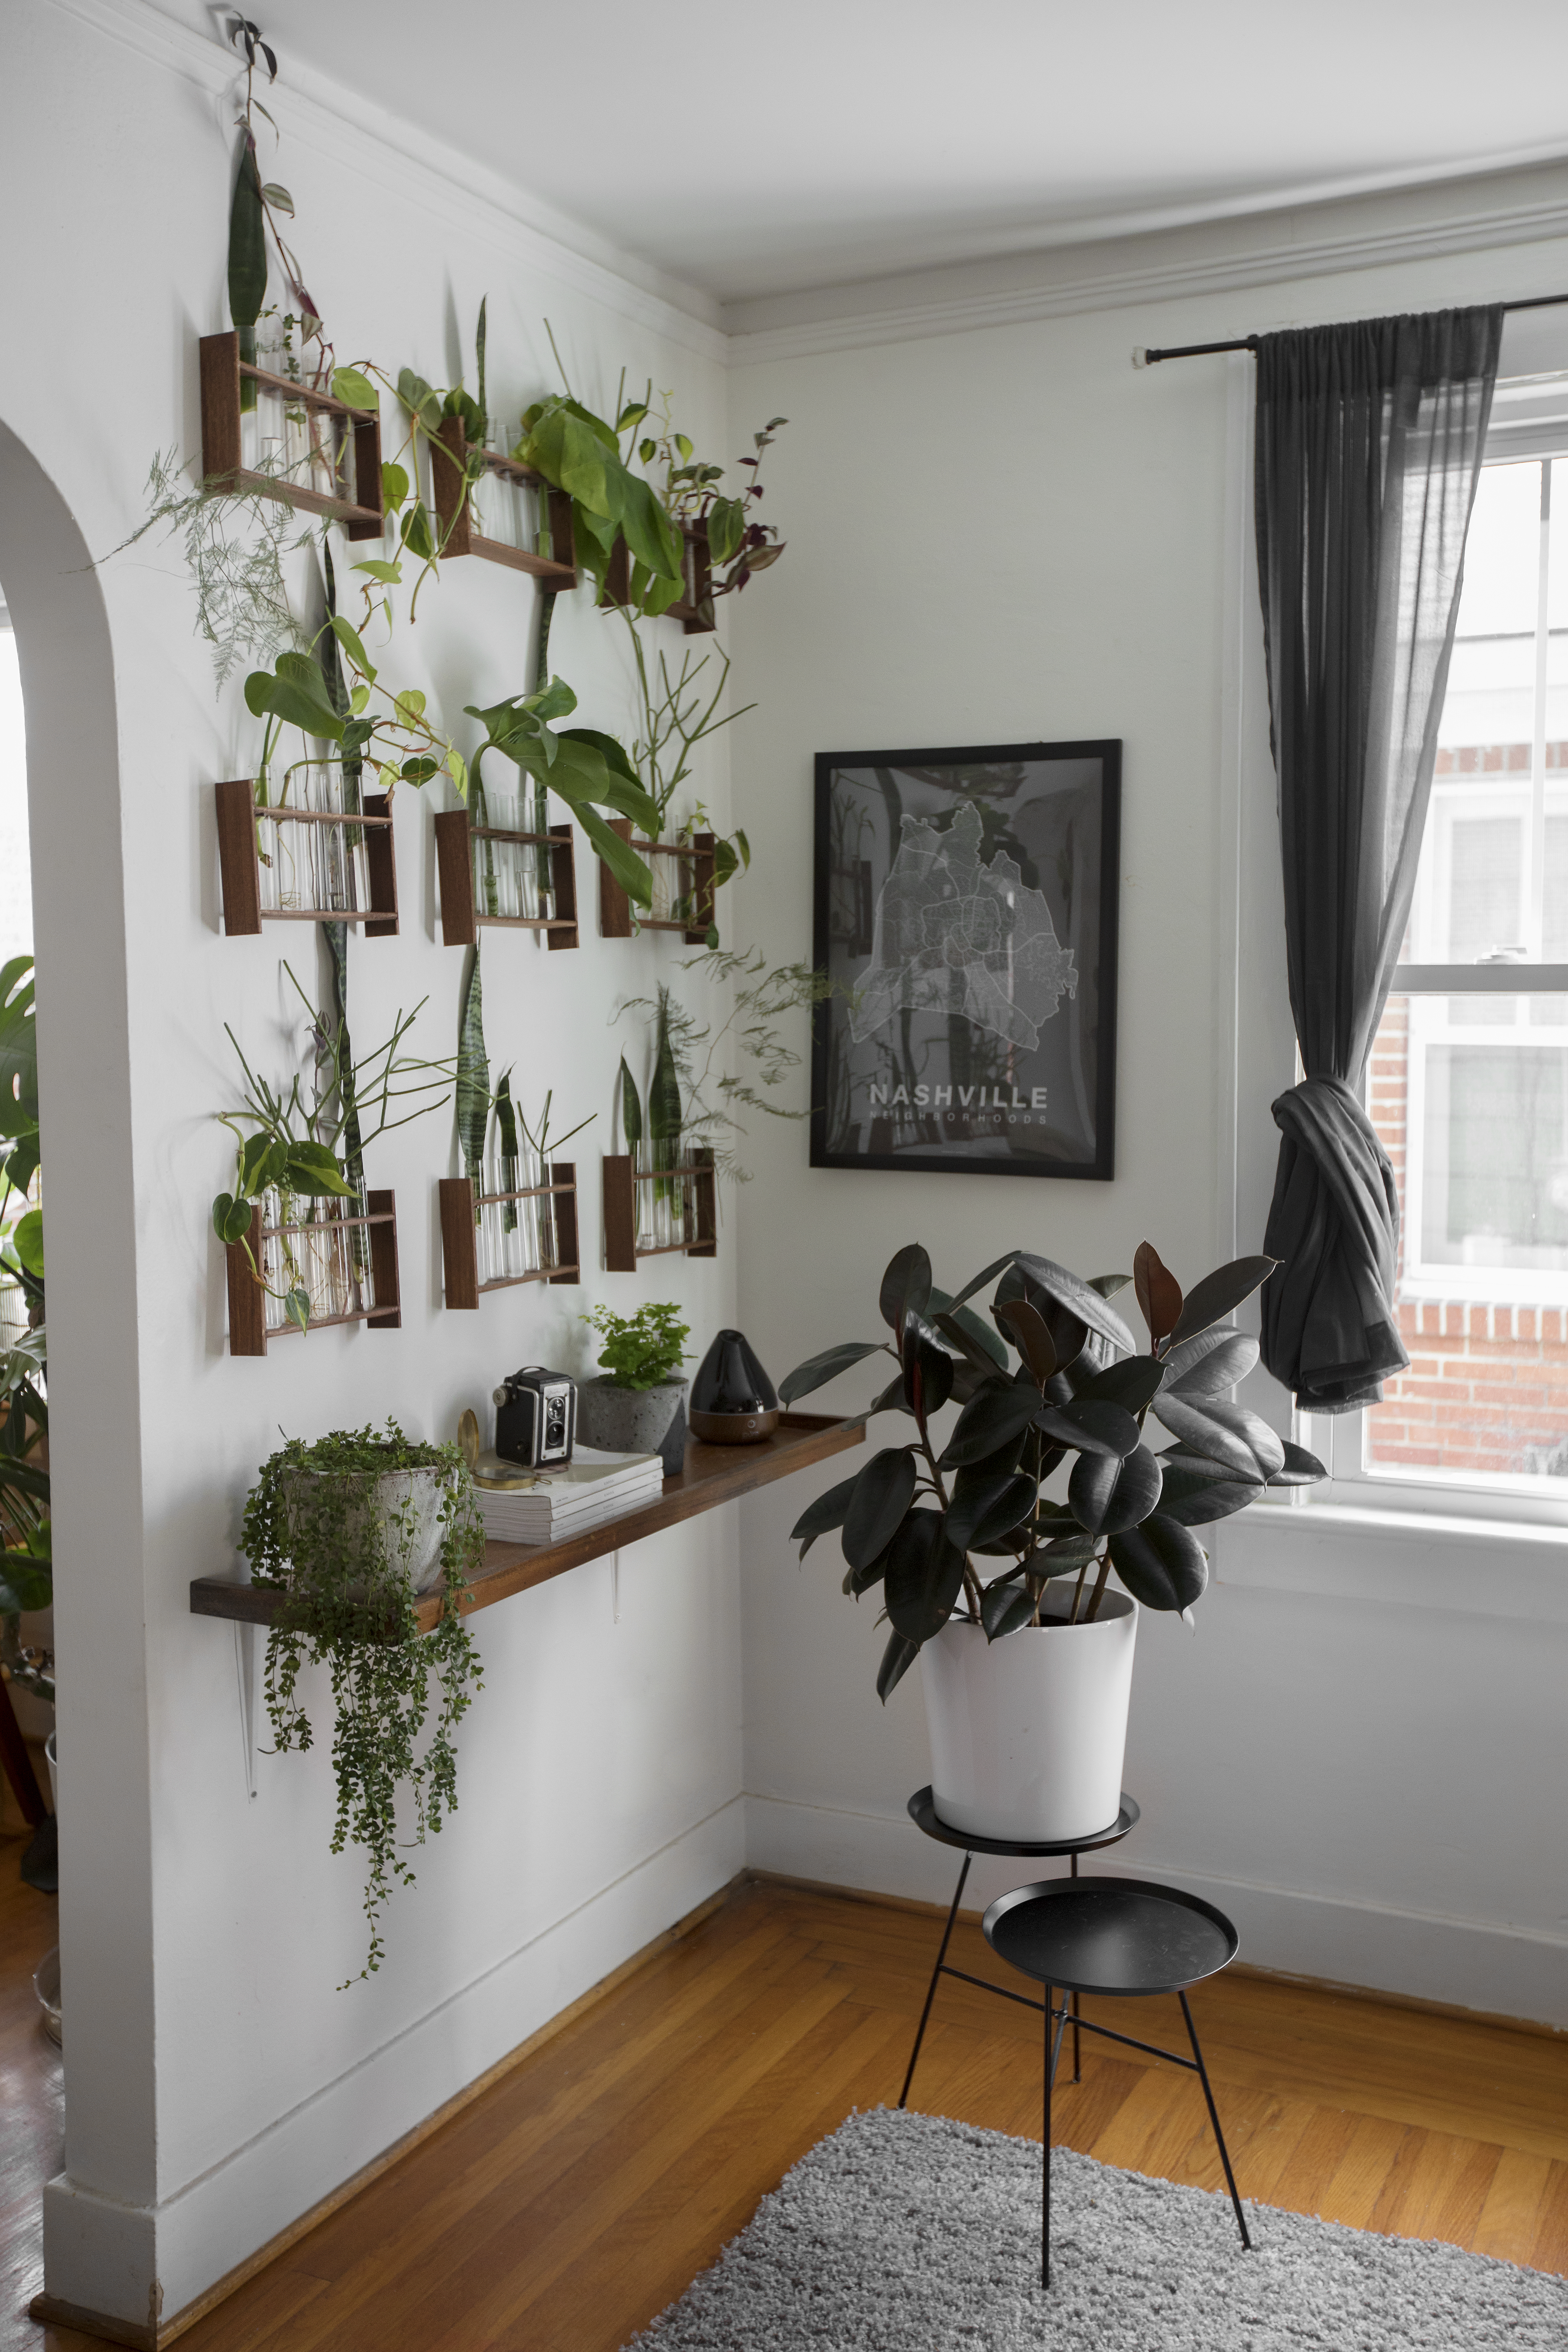 10 Indoor Garden Ideas - How to Make a Garden Inside Your Home